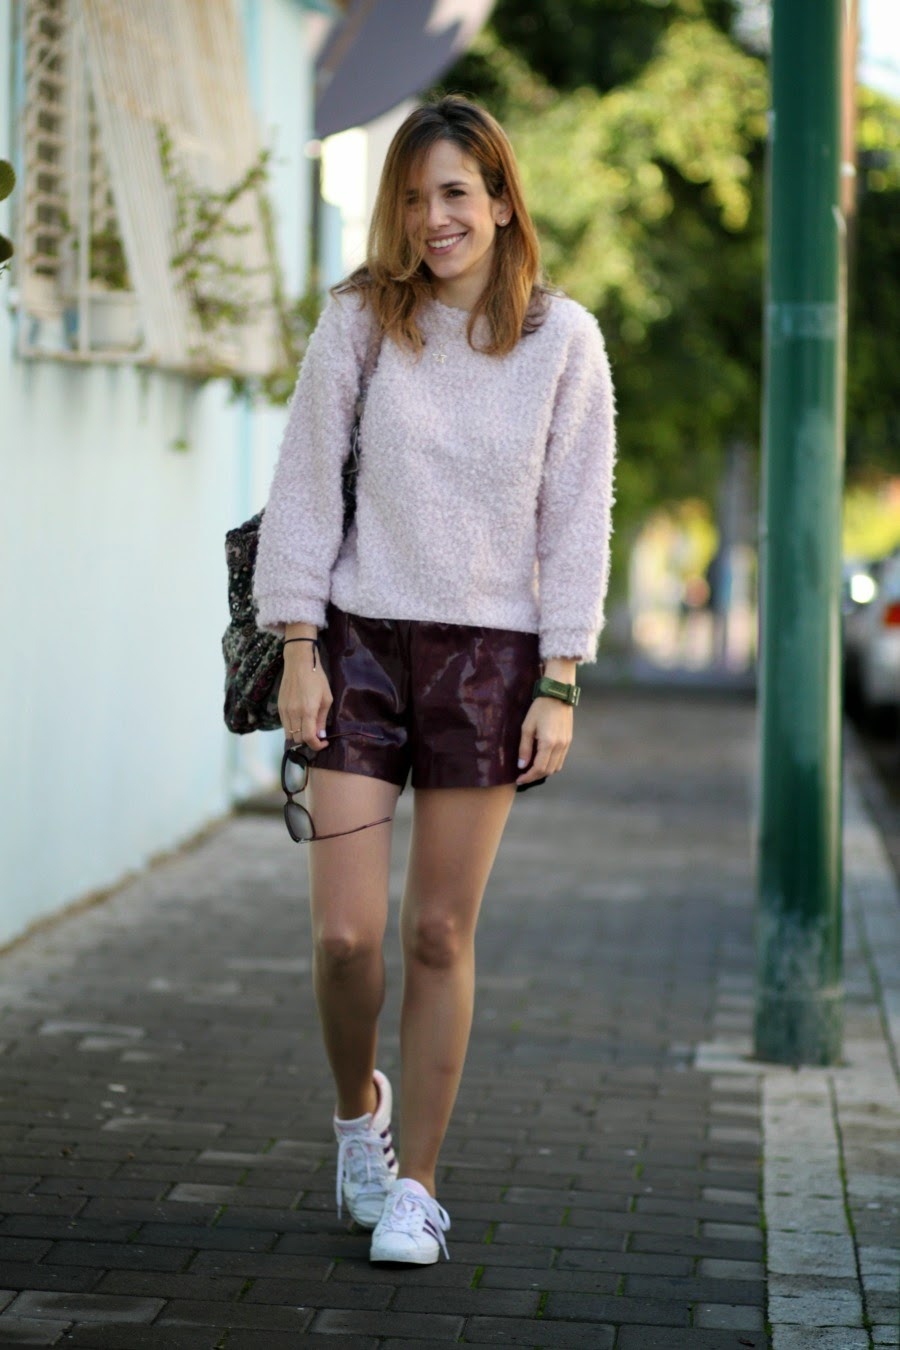 leathershorts, fluffyjumper, ootd, lookoftheday, adidaswomen, streetstyle, telavivfashion, chicwish, fashionblog, blog, אופנה, בלוגאופנה